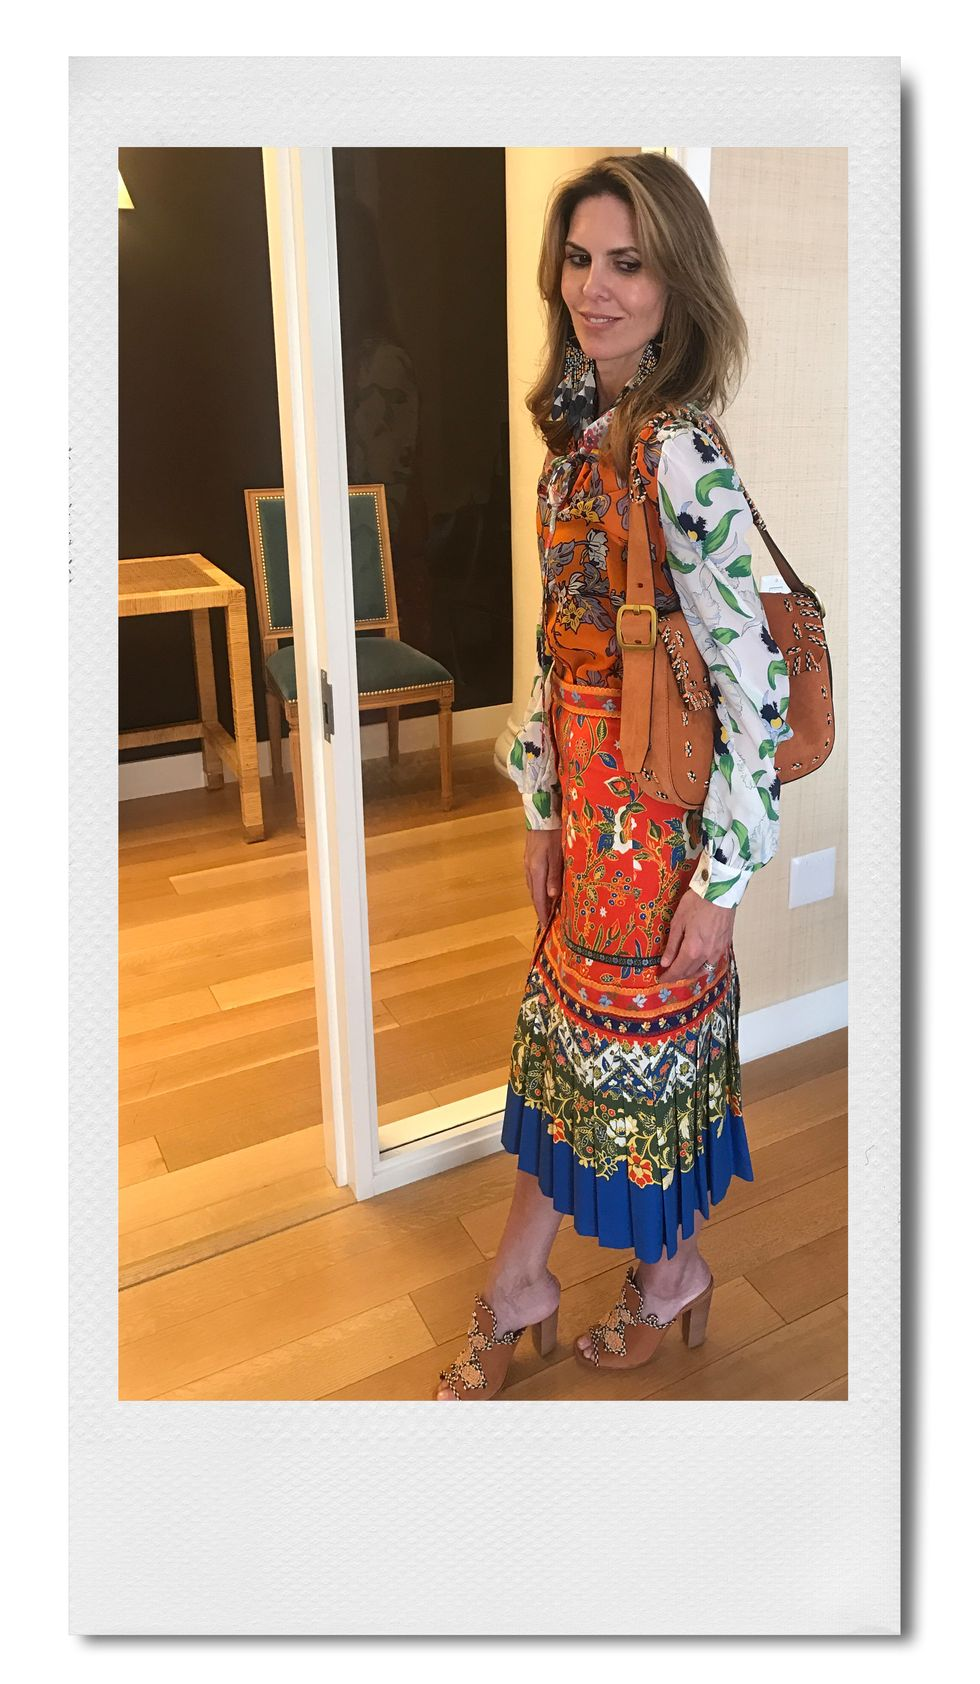 """Honor Brodie, Creative Director at Tory Burch """"When it's warmer outside I love to wear vibrant color and batik prints. This silk chiffon bow blouse adds a bit of softness to the more structured midi skirt while the embroidered suede bag and mules have a bohemian vibe that feels right for summer."""""""